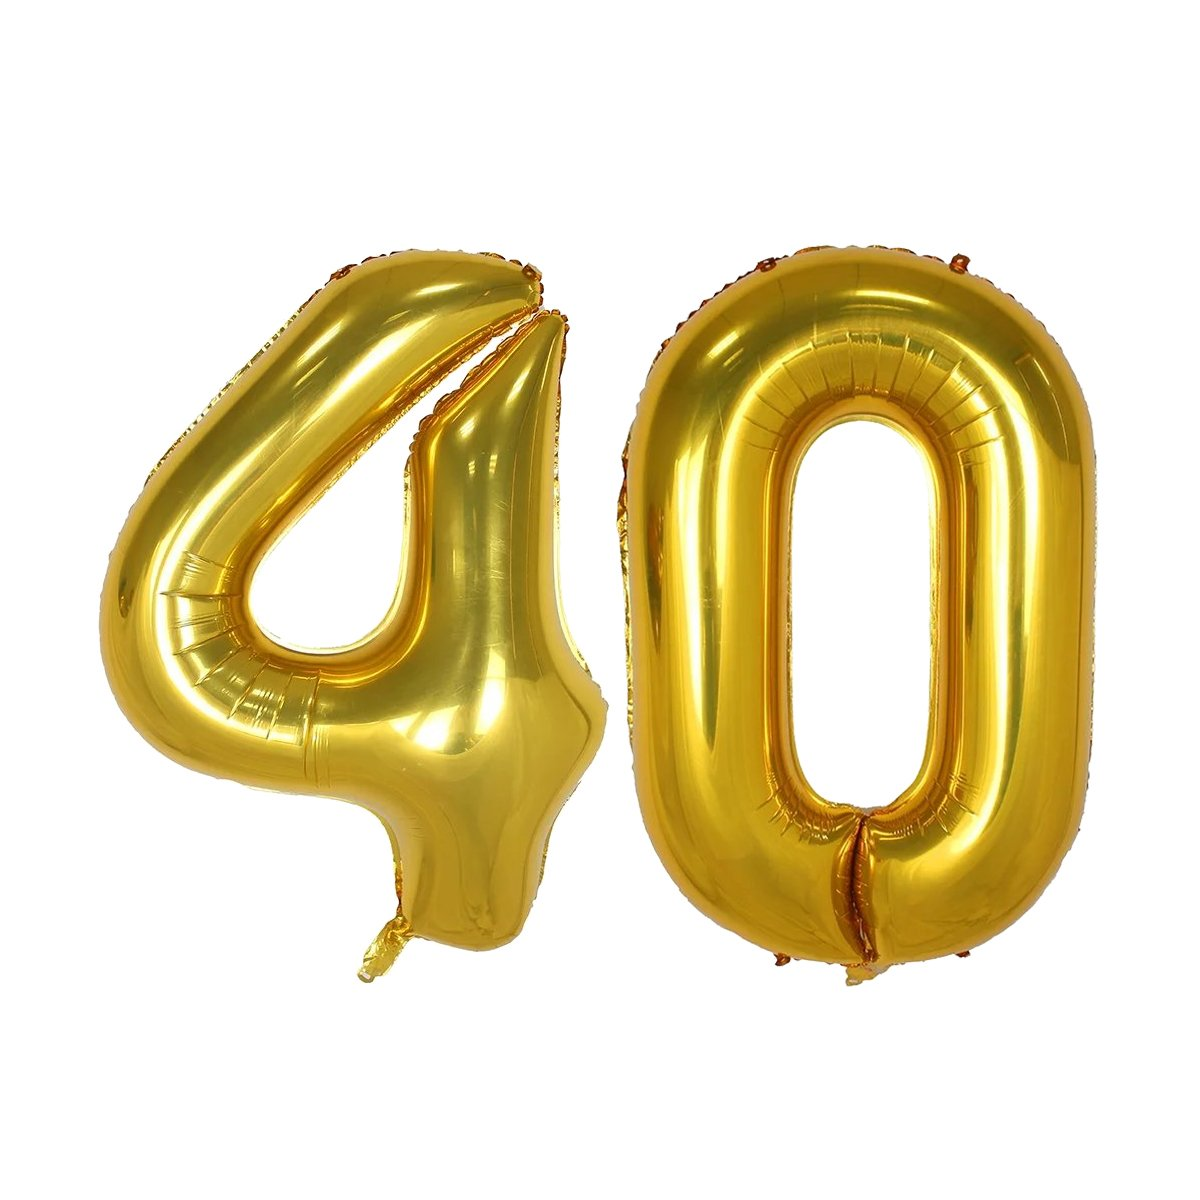 40inch Gold Number 60 Balloon Party Festival Decorations Birthday Anniversary Jumbo Foil Helium Balloons Supplies Use Them As Props For Photos